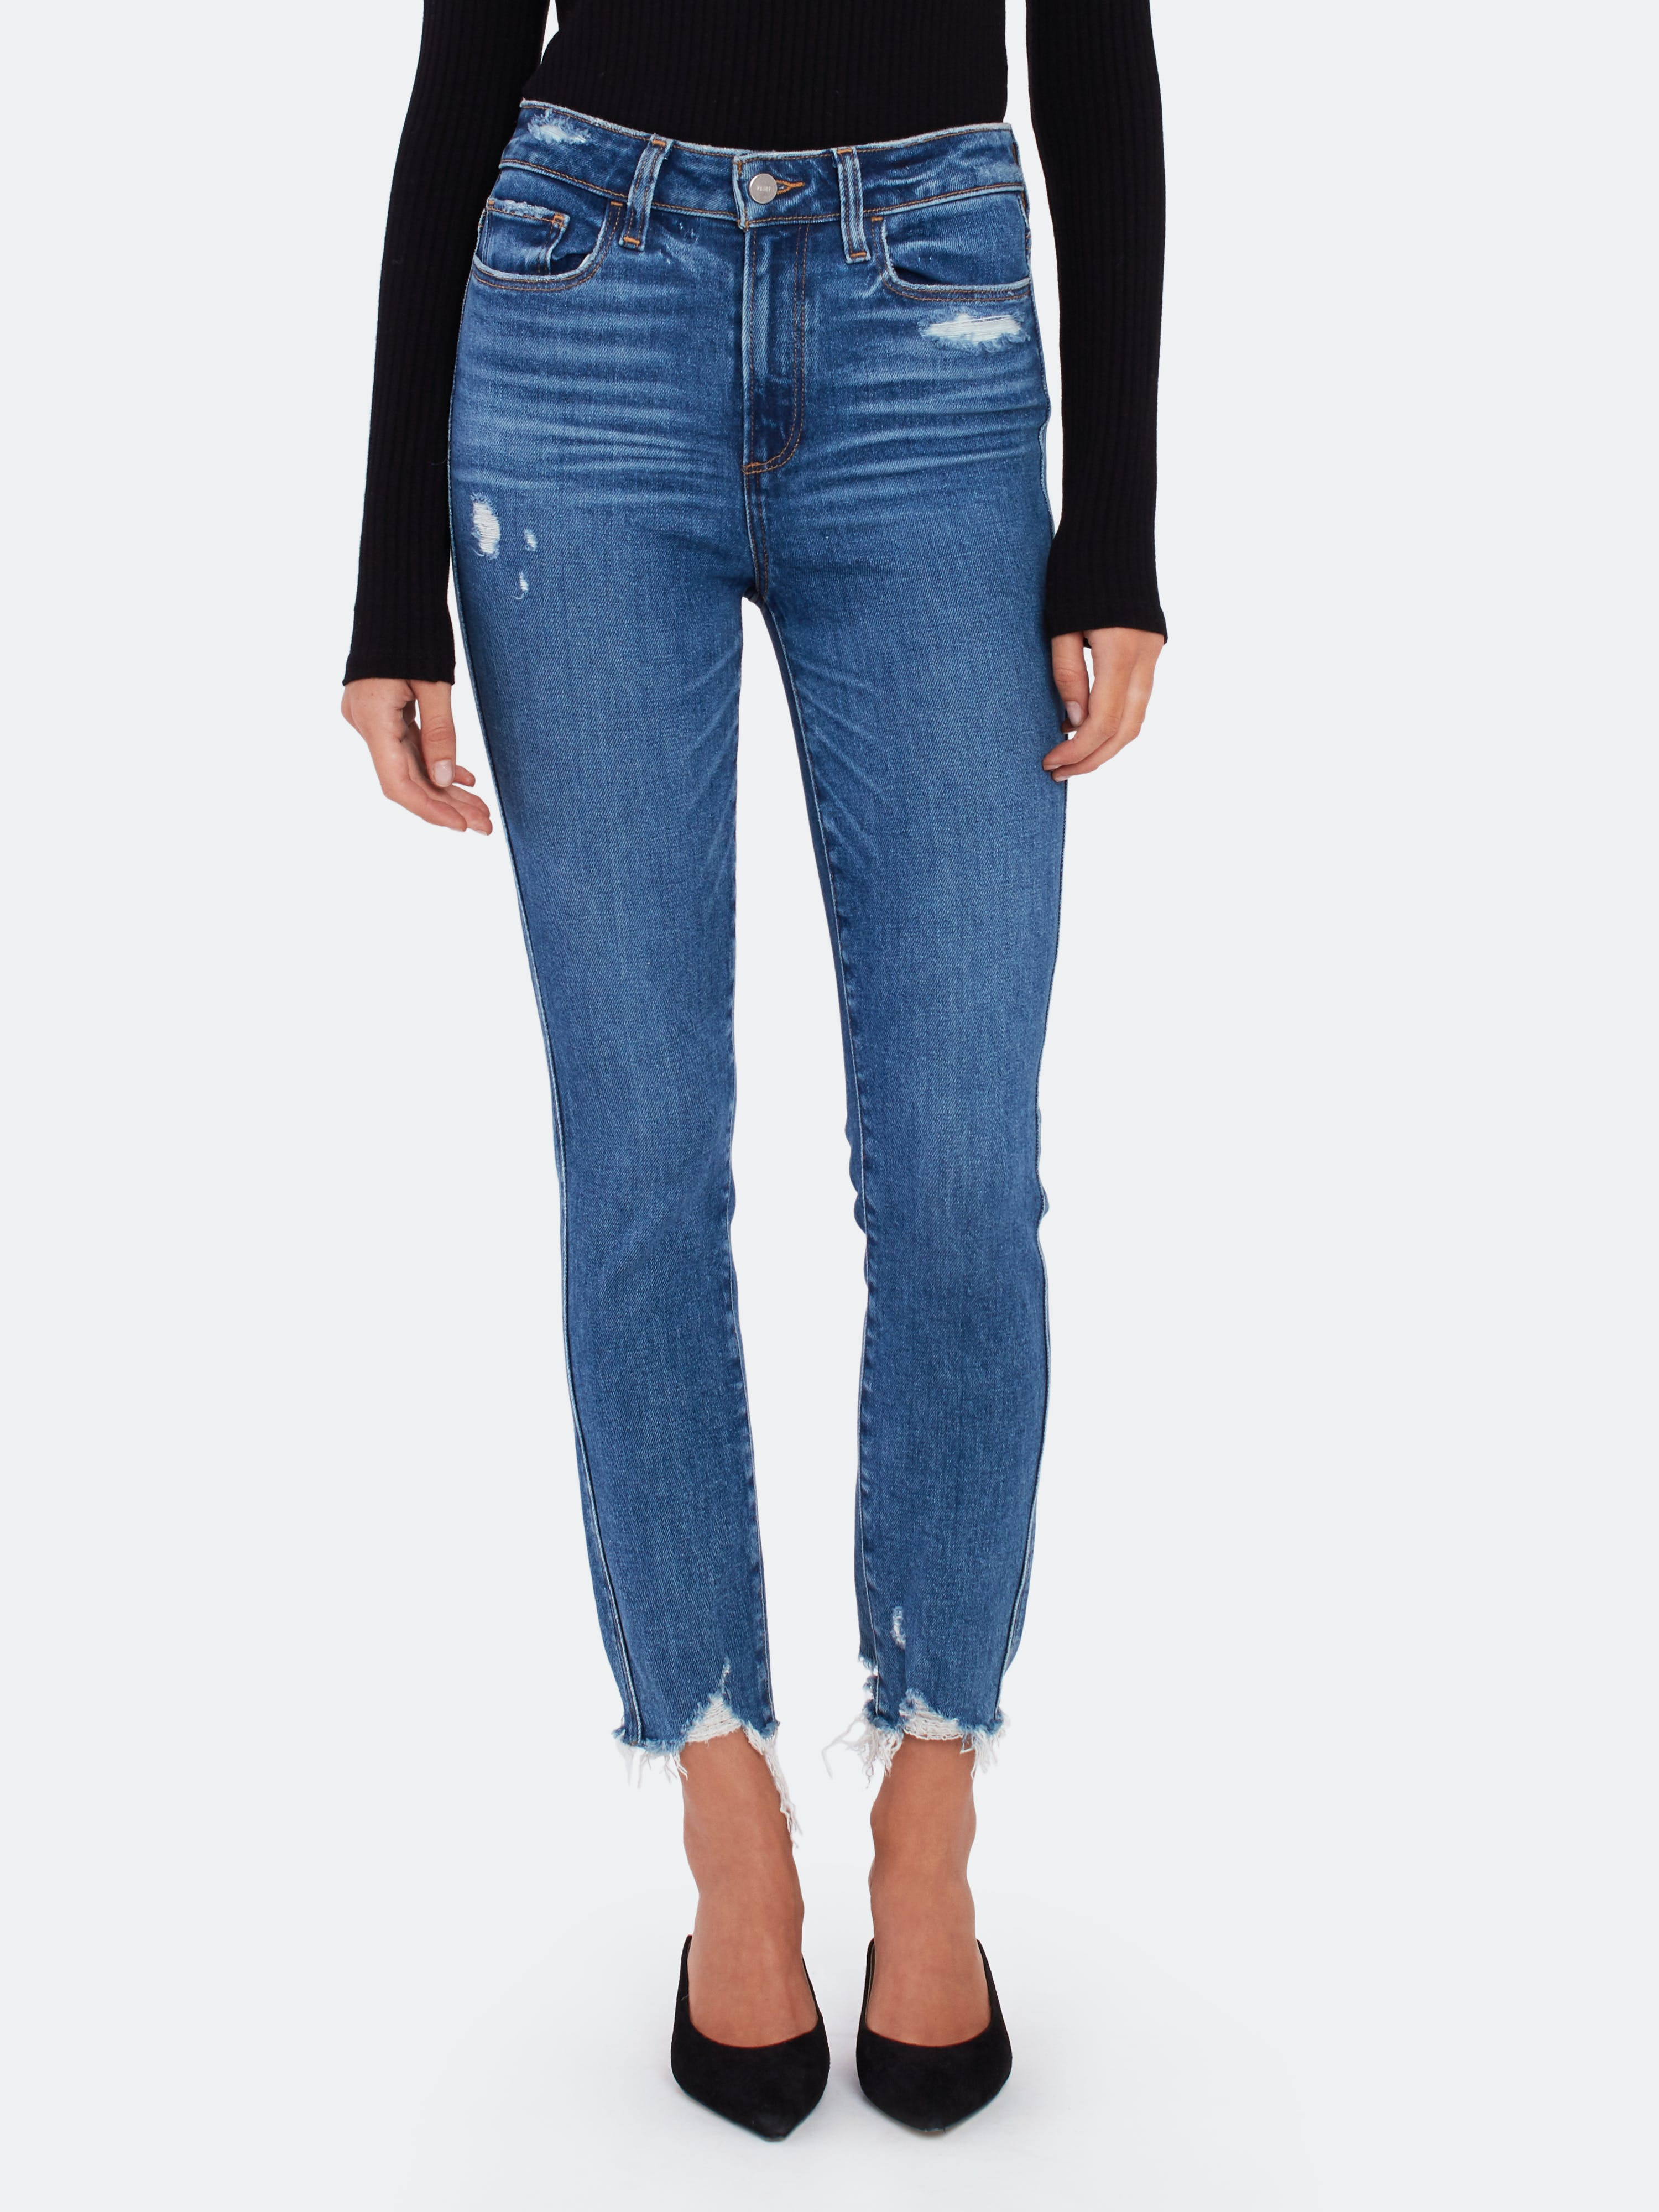 Paige PAIGE HOXTON HIGH RISE SKINNY ANKLE JEANS